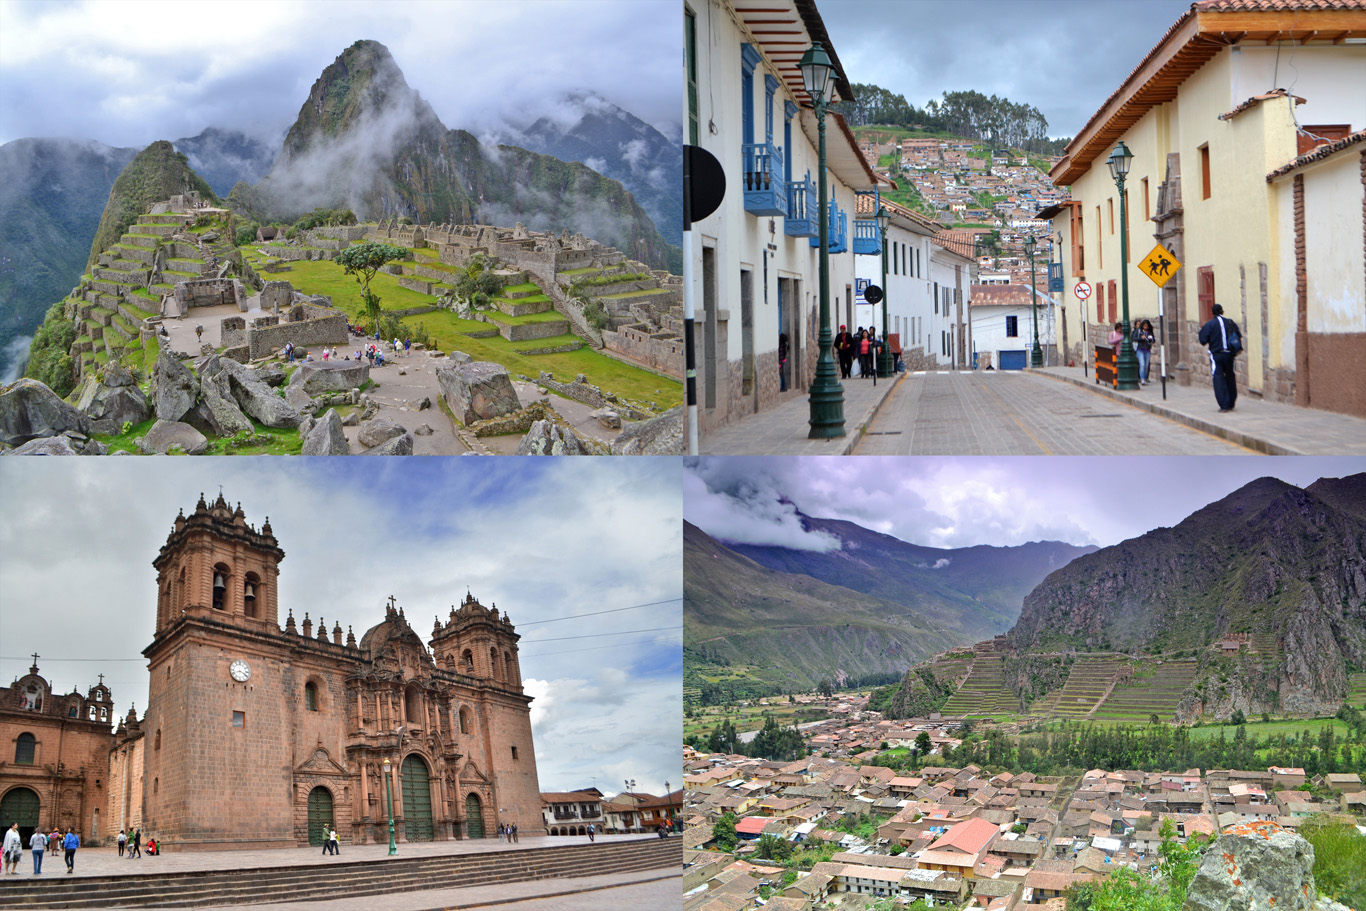 From top left: Machu Picchu, a street in Cuzco, Cuzco Cathedral and the village of Ollantaytambo